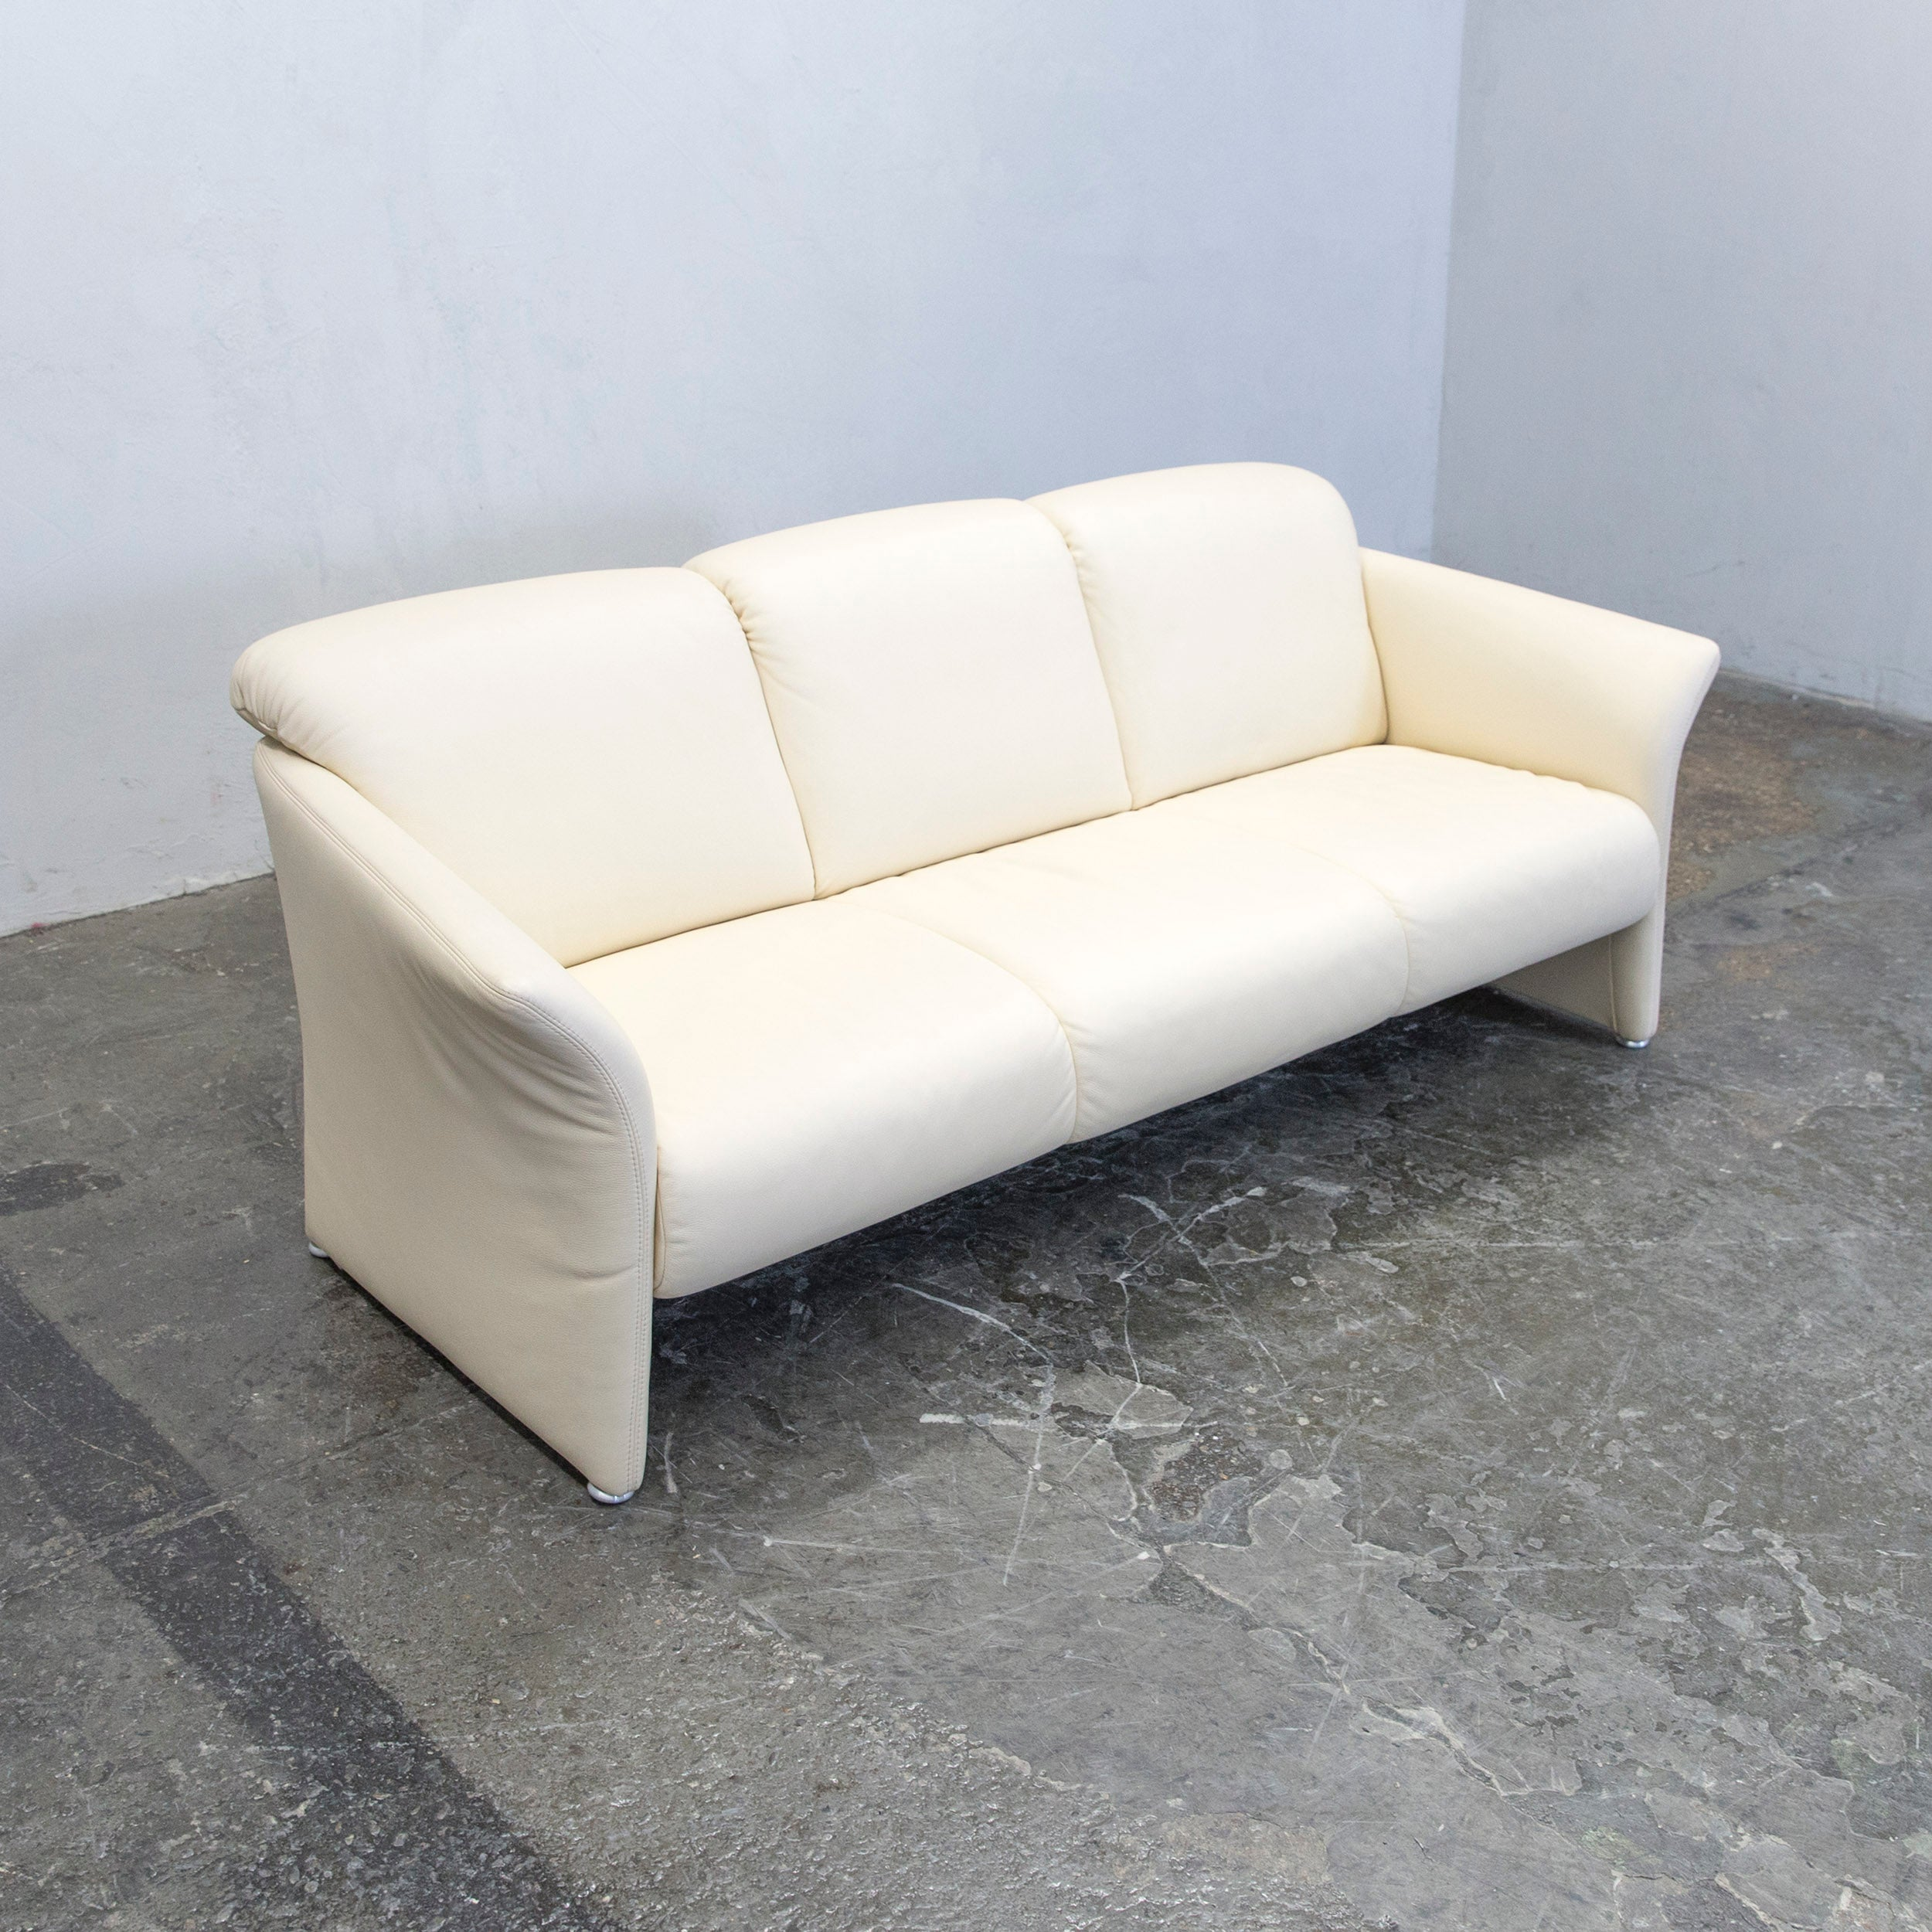 Designer Sofa Leather Crème Three Seat Couch Modern At 1stdibs